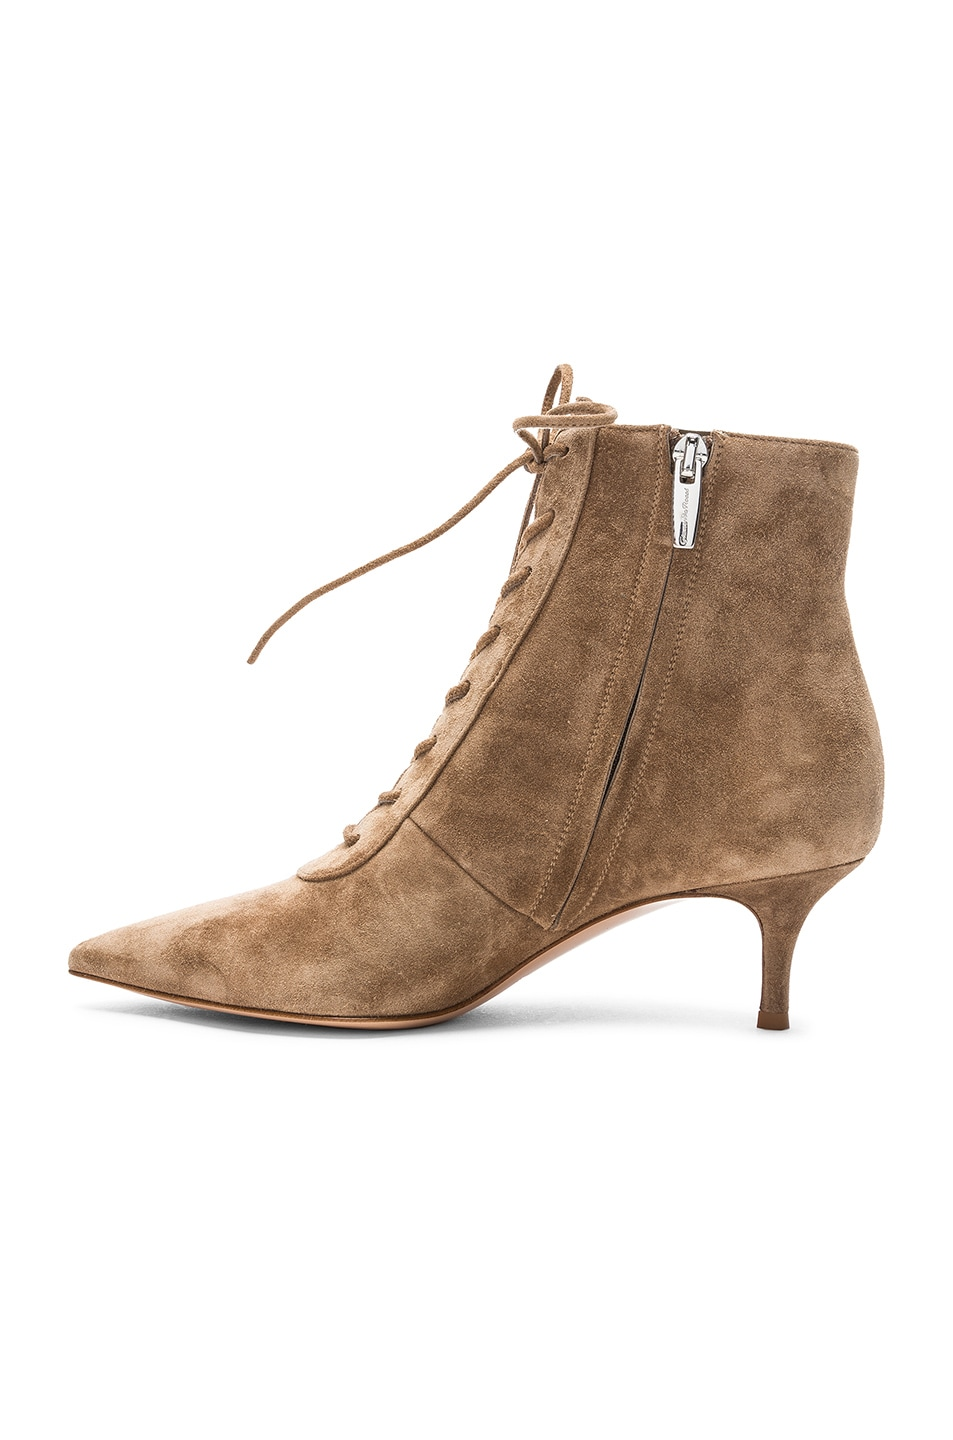 Image 5 of Gianvito Rossi Suede Kitten Heel Lace Up Ankle Boots in Camel